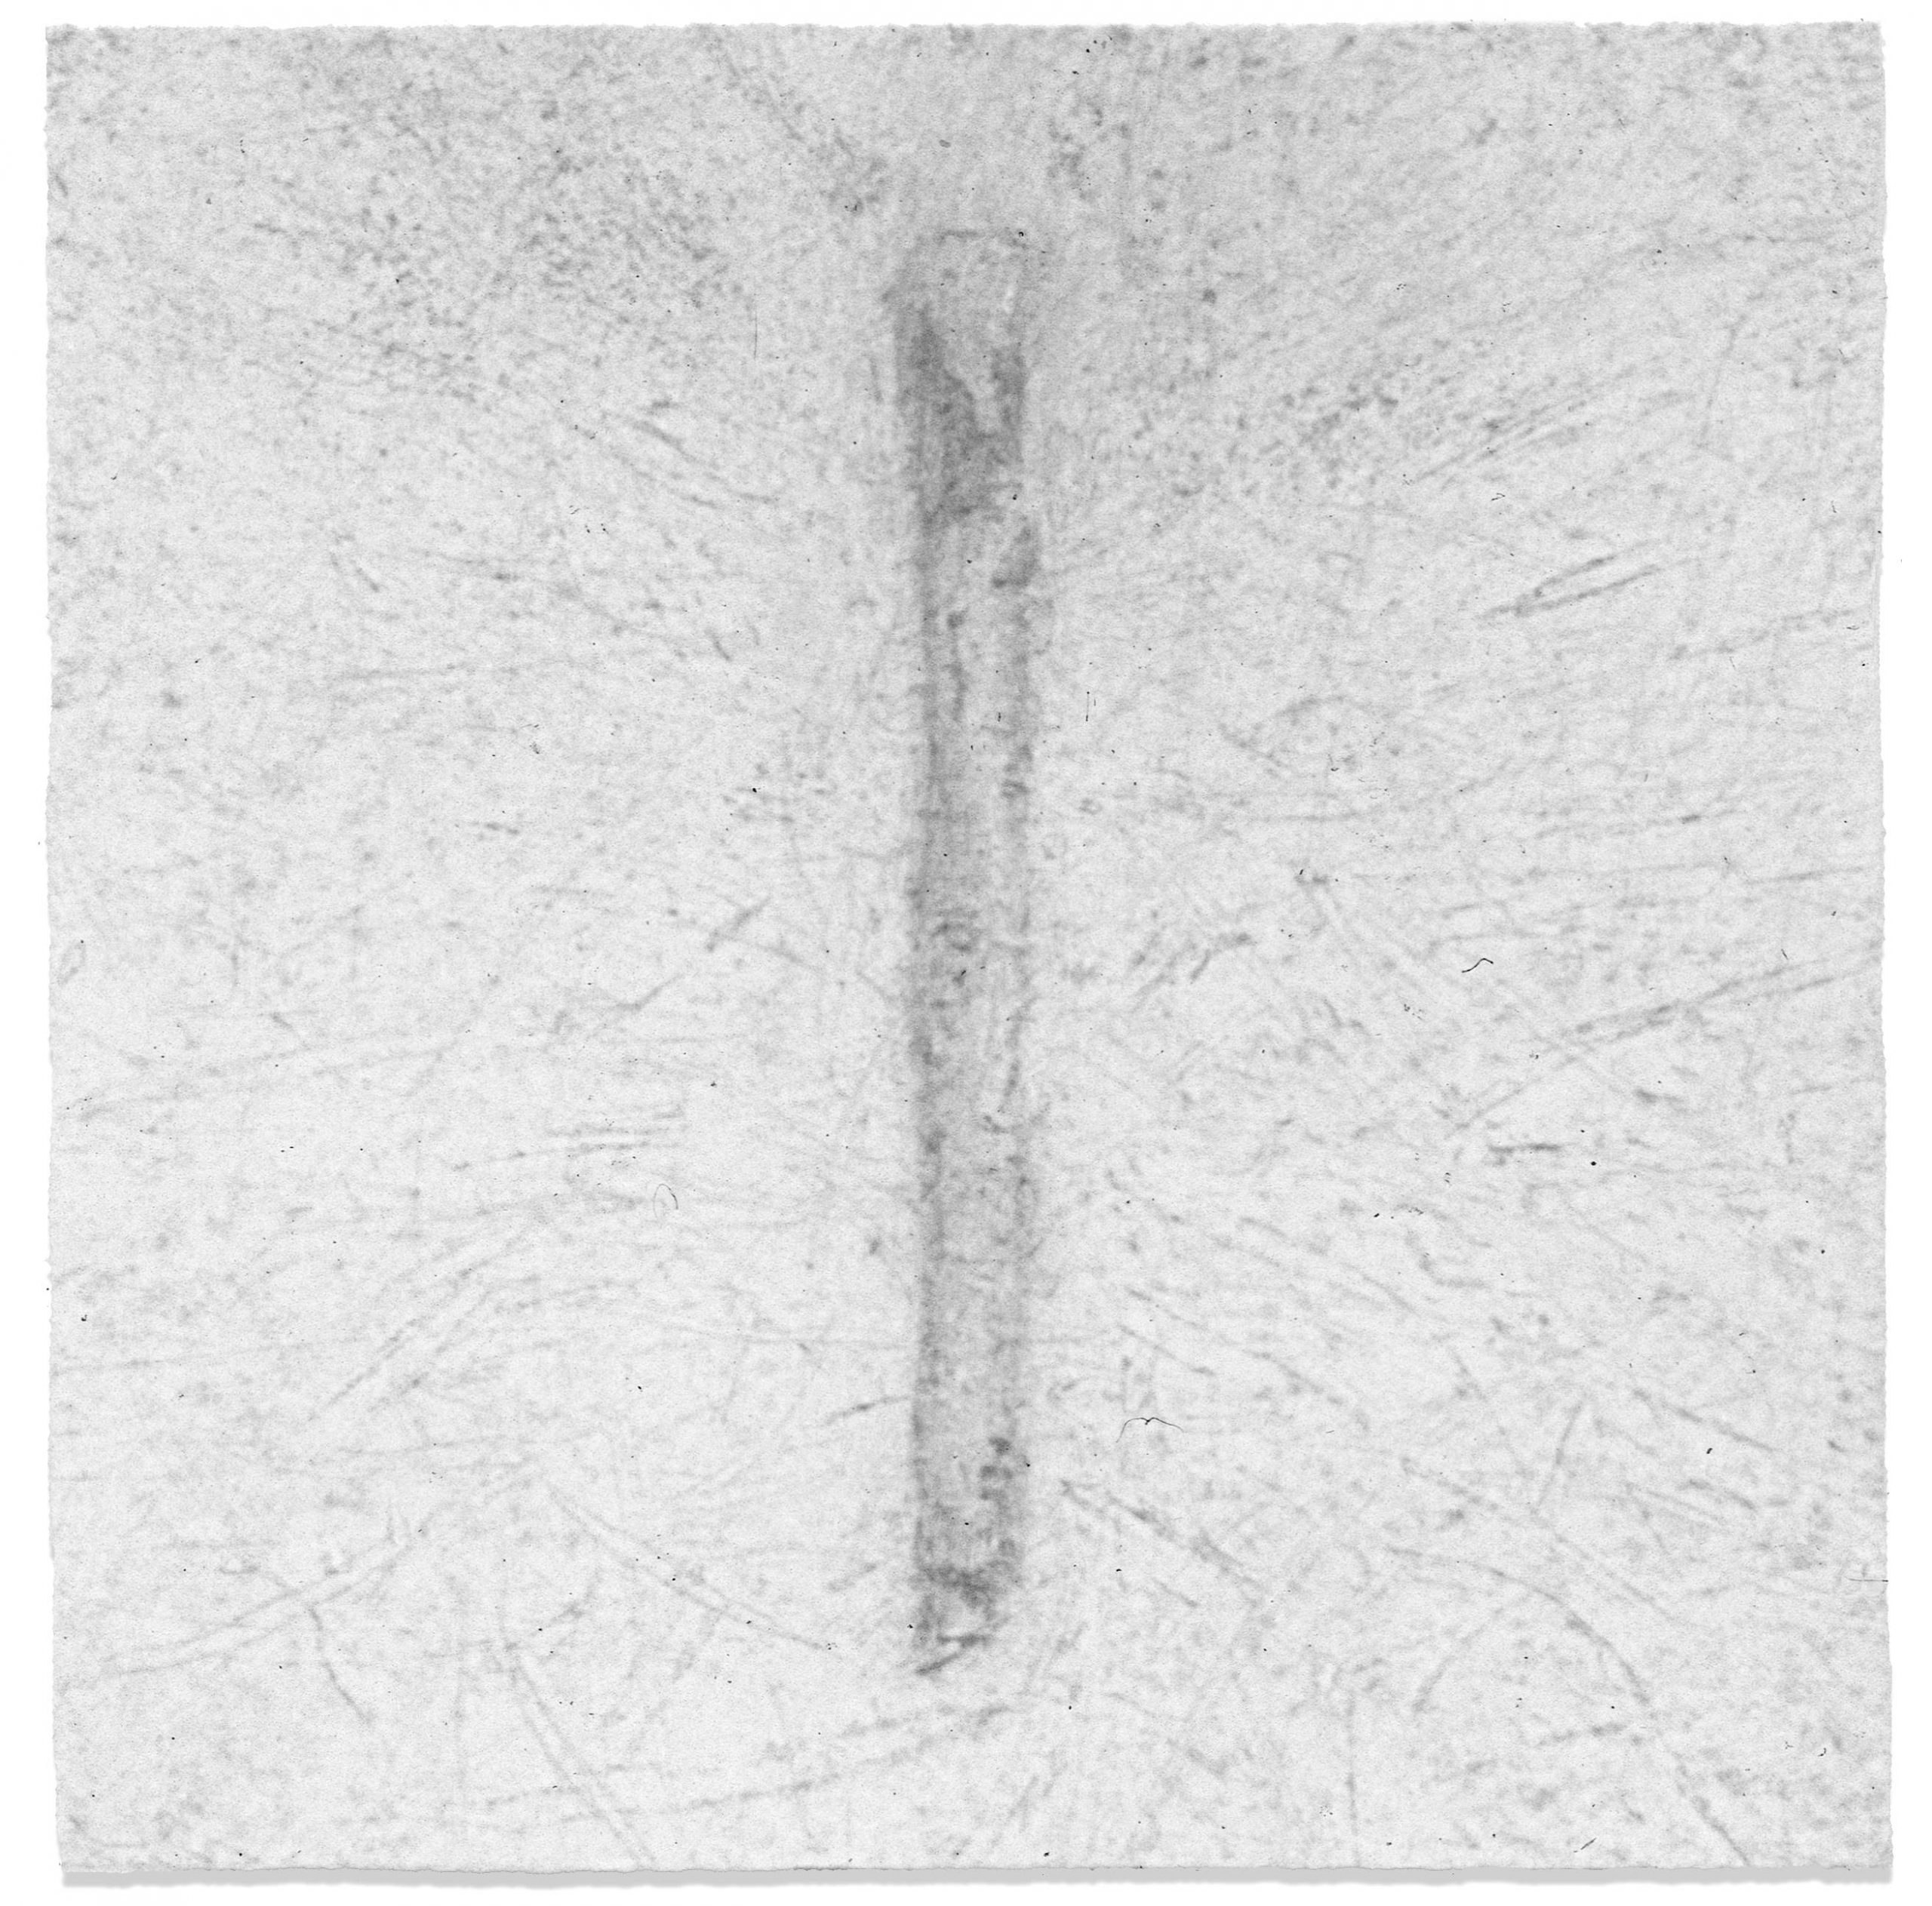 Emanation 1993, graphite on paper, 18 x 18cm